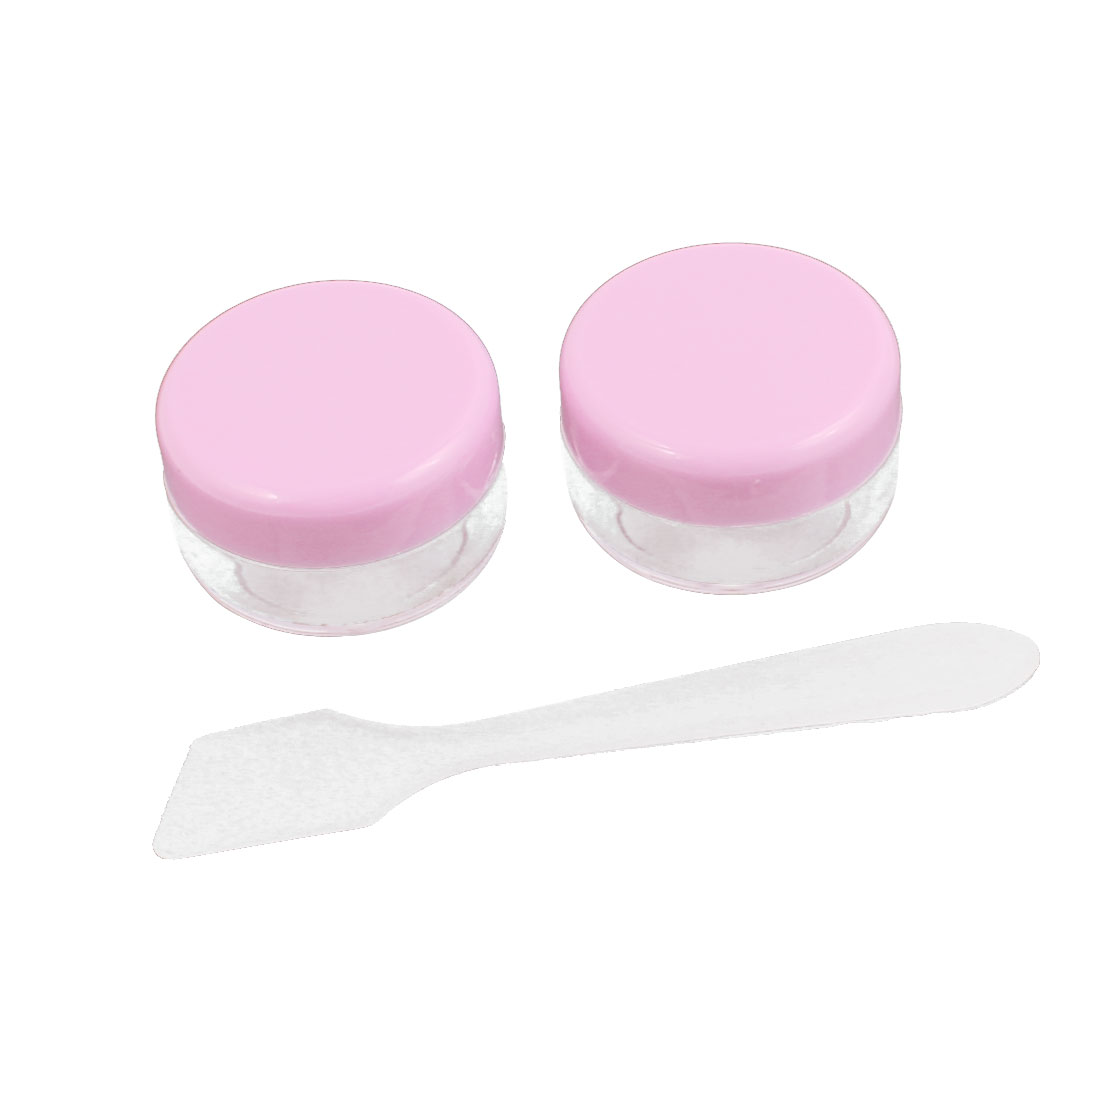 Women Plastic Round Shaped Cosmetic Makeup Container Case Cover Pink Clear 2 Pcs